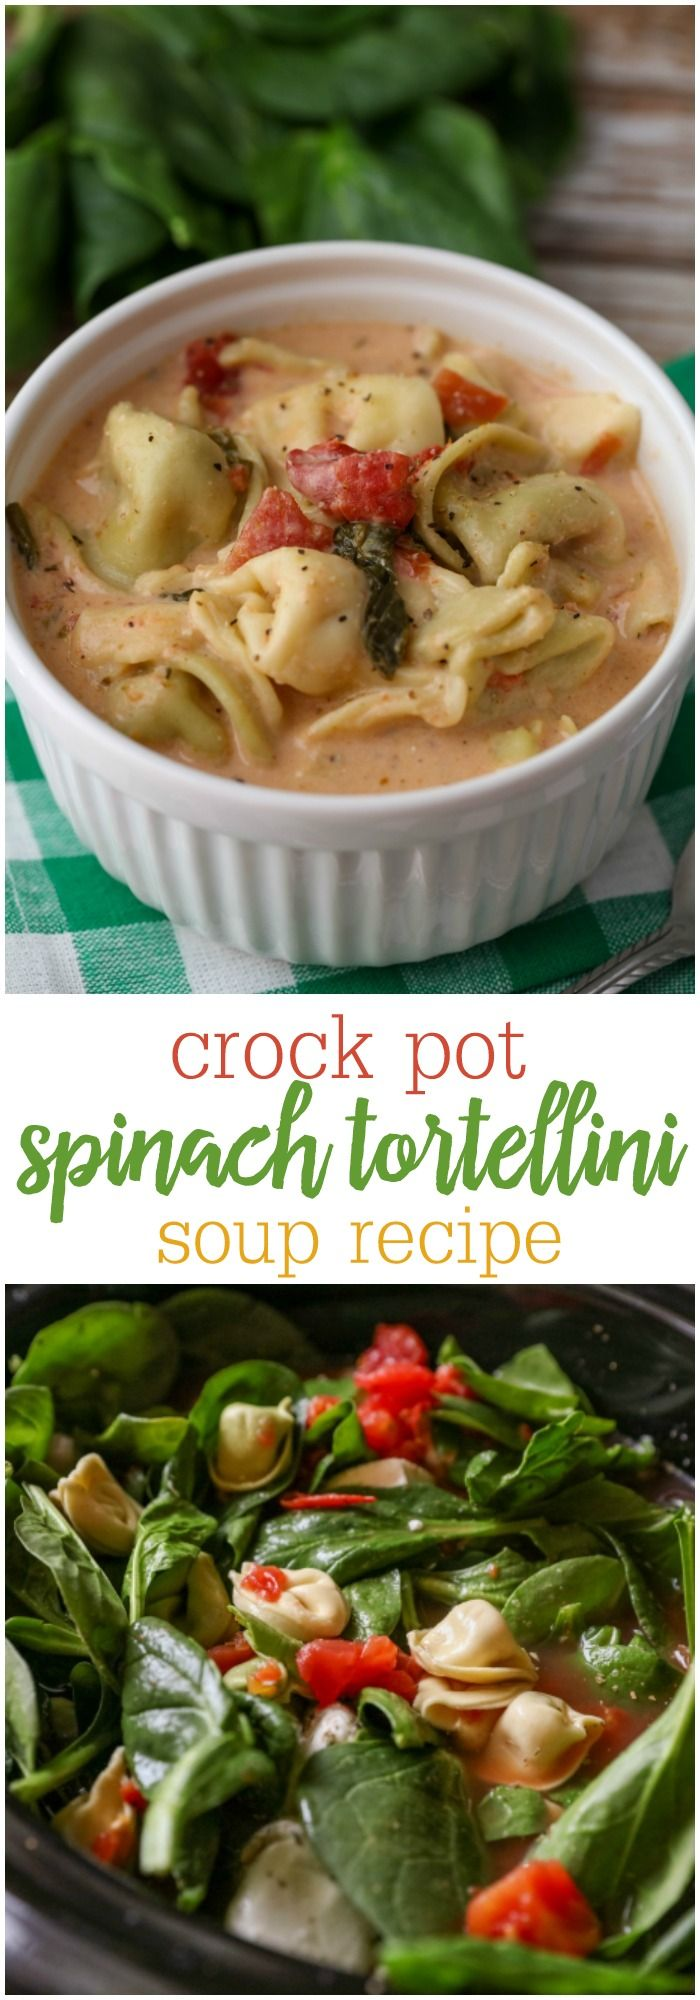 Crock Pot Tortellini and Spinach Soup - little prep time and an amazing result! { lilluna.com } A hearty soup filled with cheese tortellini, spinach, tomatoes, and lots of spices!!